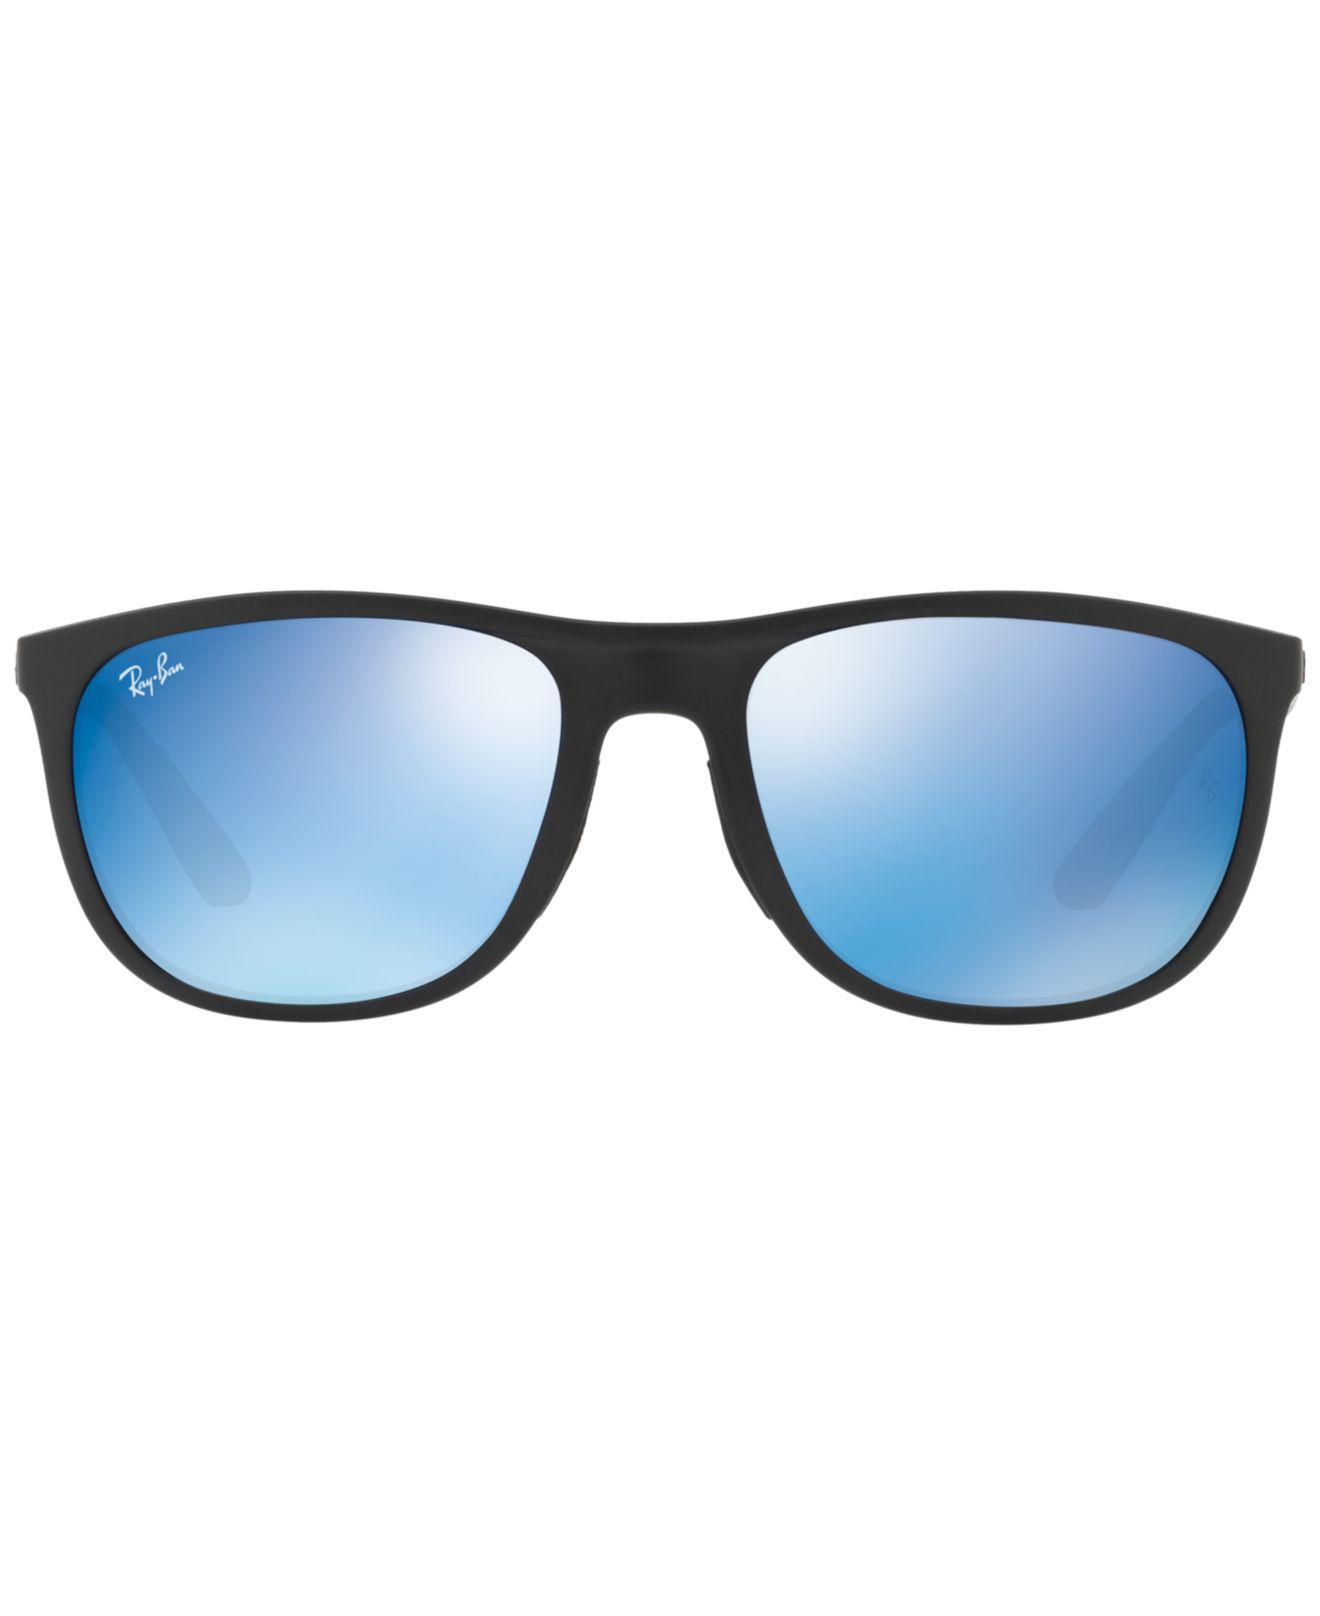 6212199834f ... reduced lyst ray ban sunglasses rb4291 58 in blue for men 265cf 82ae5  ...